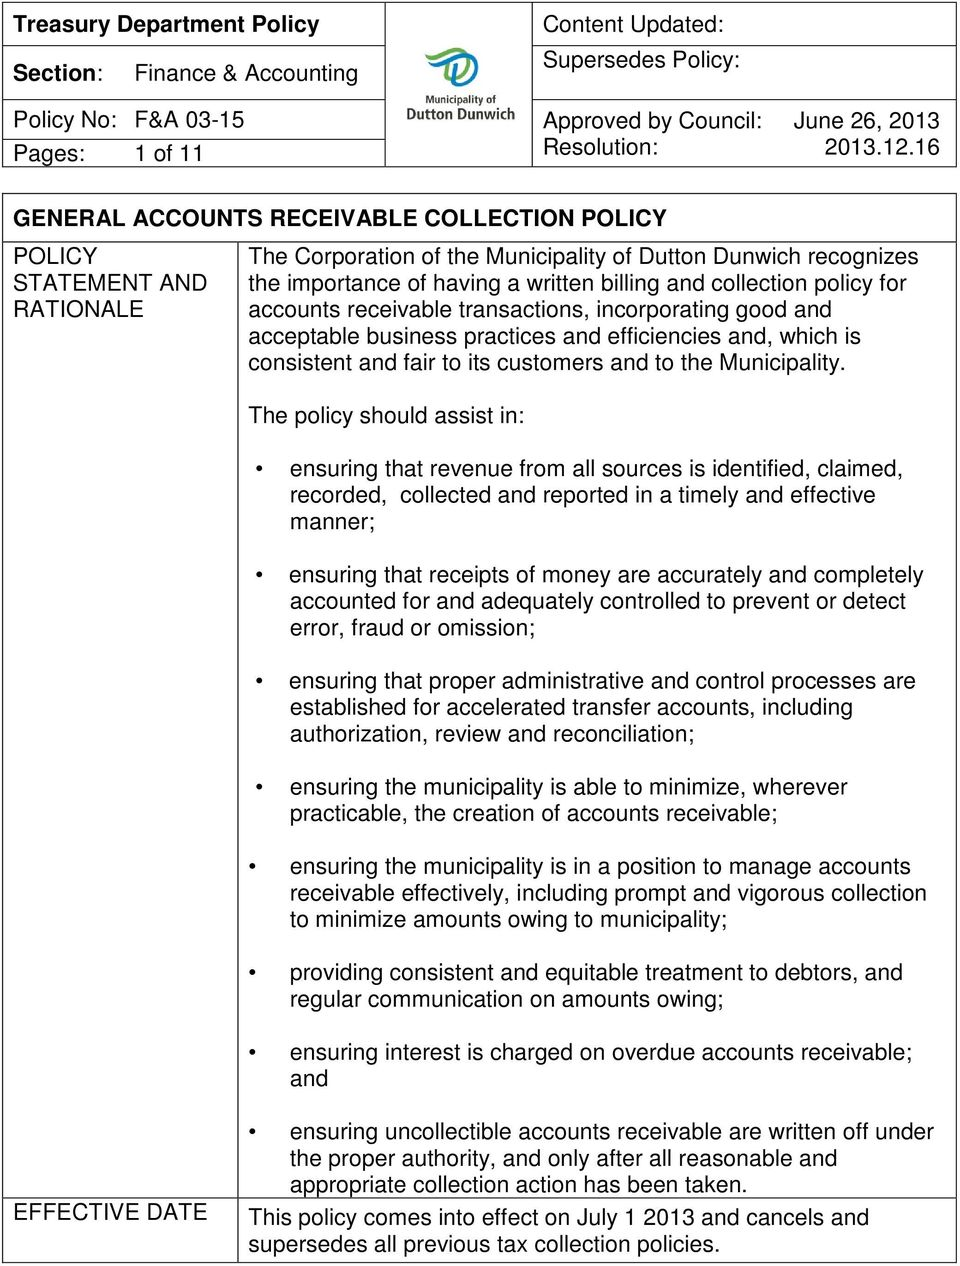 billing and collection policy for accounts receivable transactions, incorporating good and acceptable business practices and efficiencies and, which is consistent and fair to its customers and to the